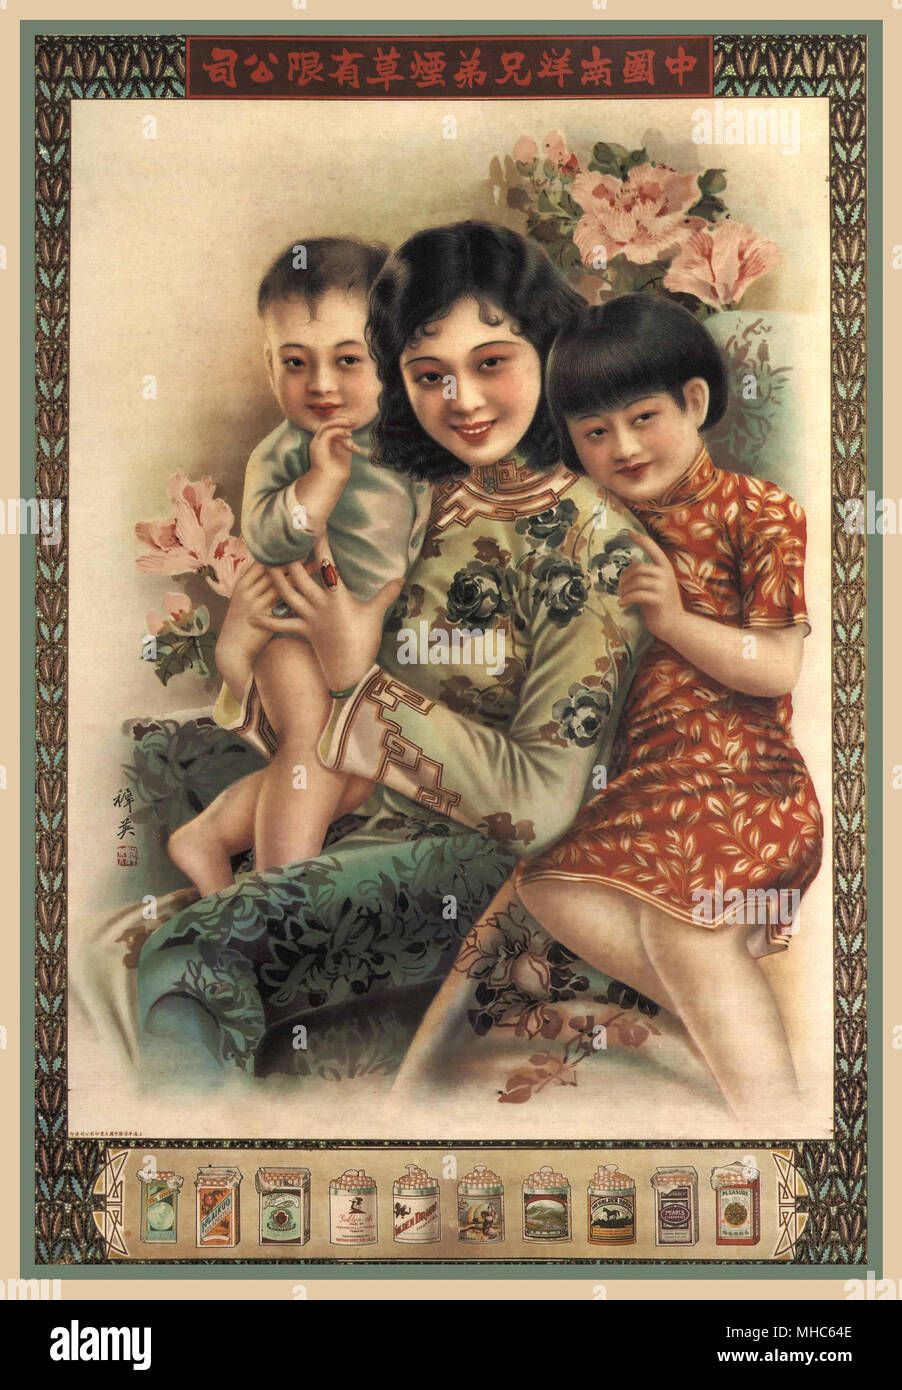 Vintage Chinese cigarette advertising poster for Nanyang Brothers Tobacco Co. dated 1920s - Stock Image